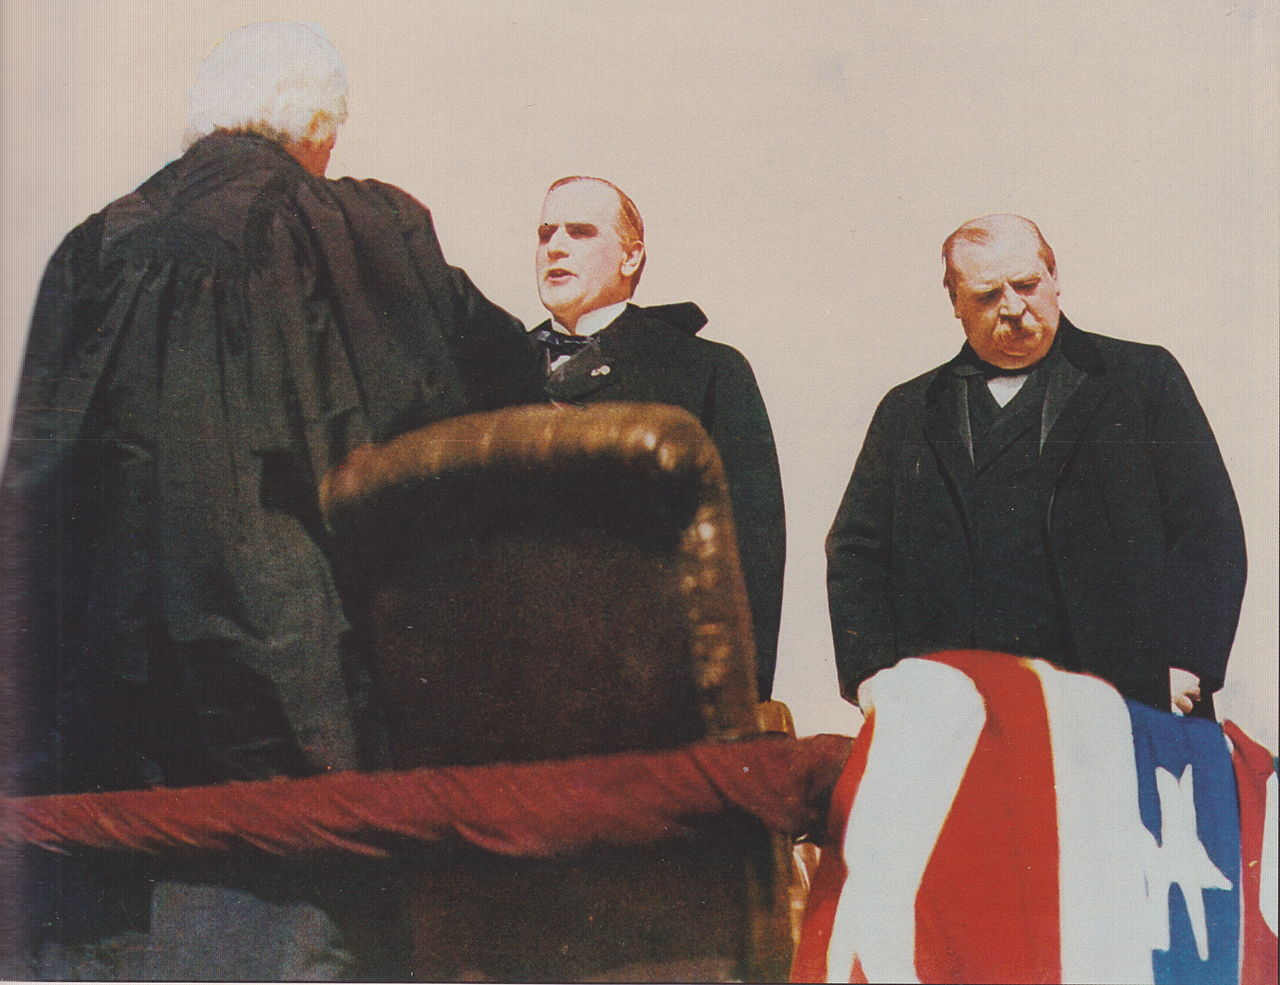 William McKinley is sworn in as President of the United States.